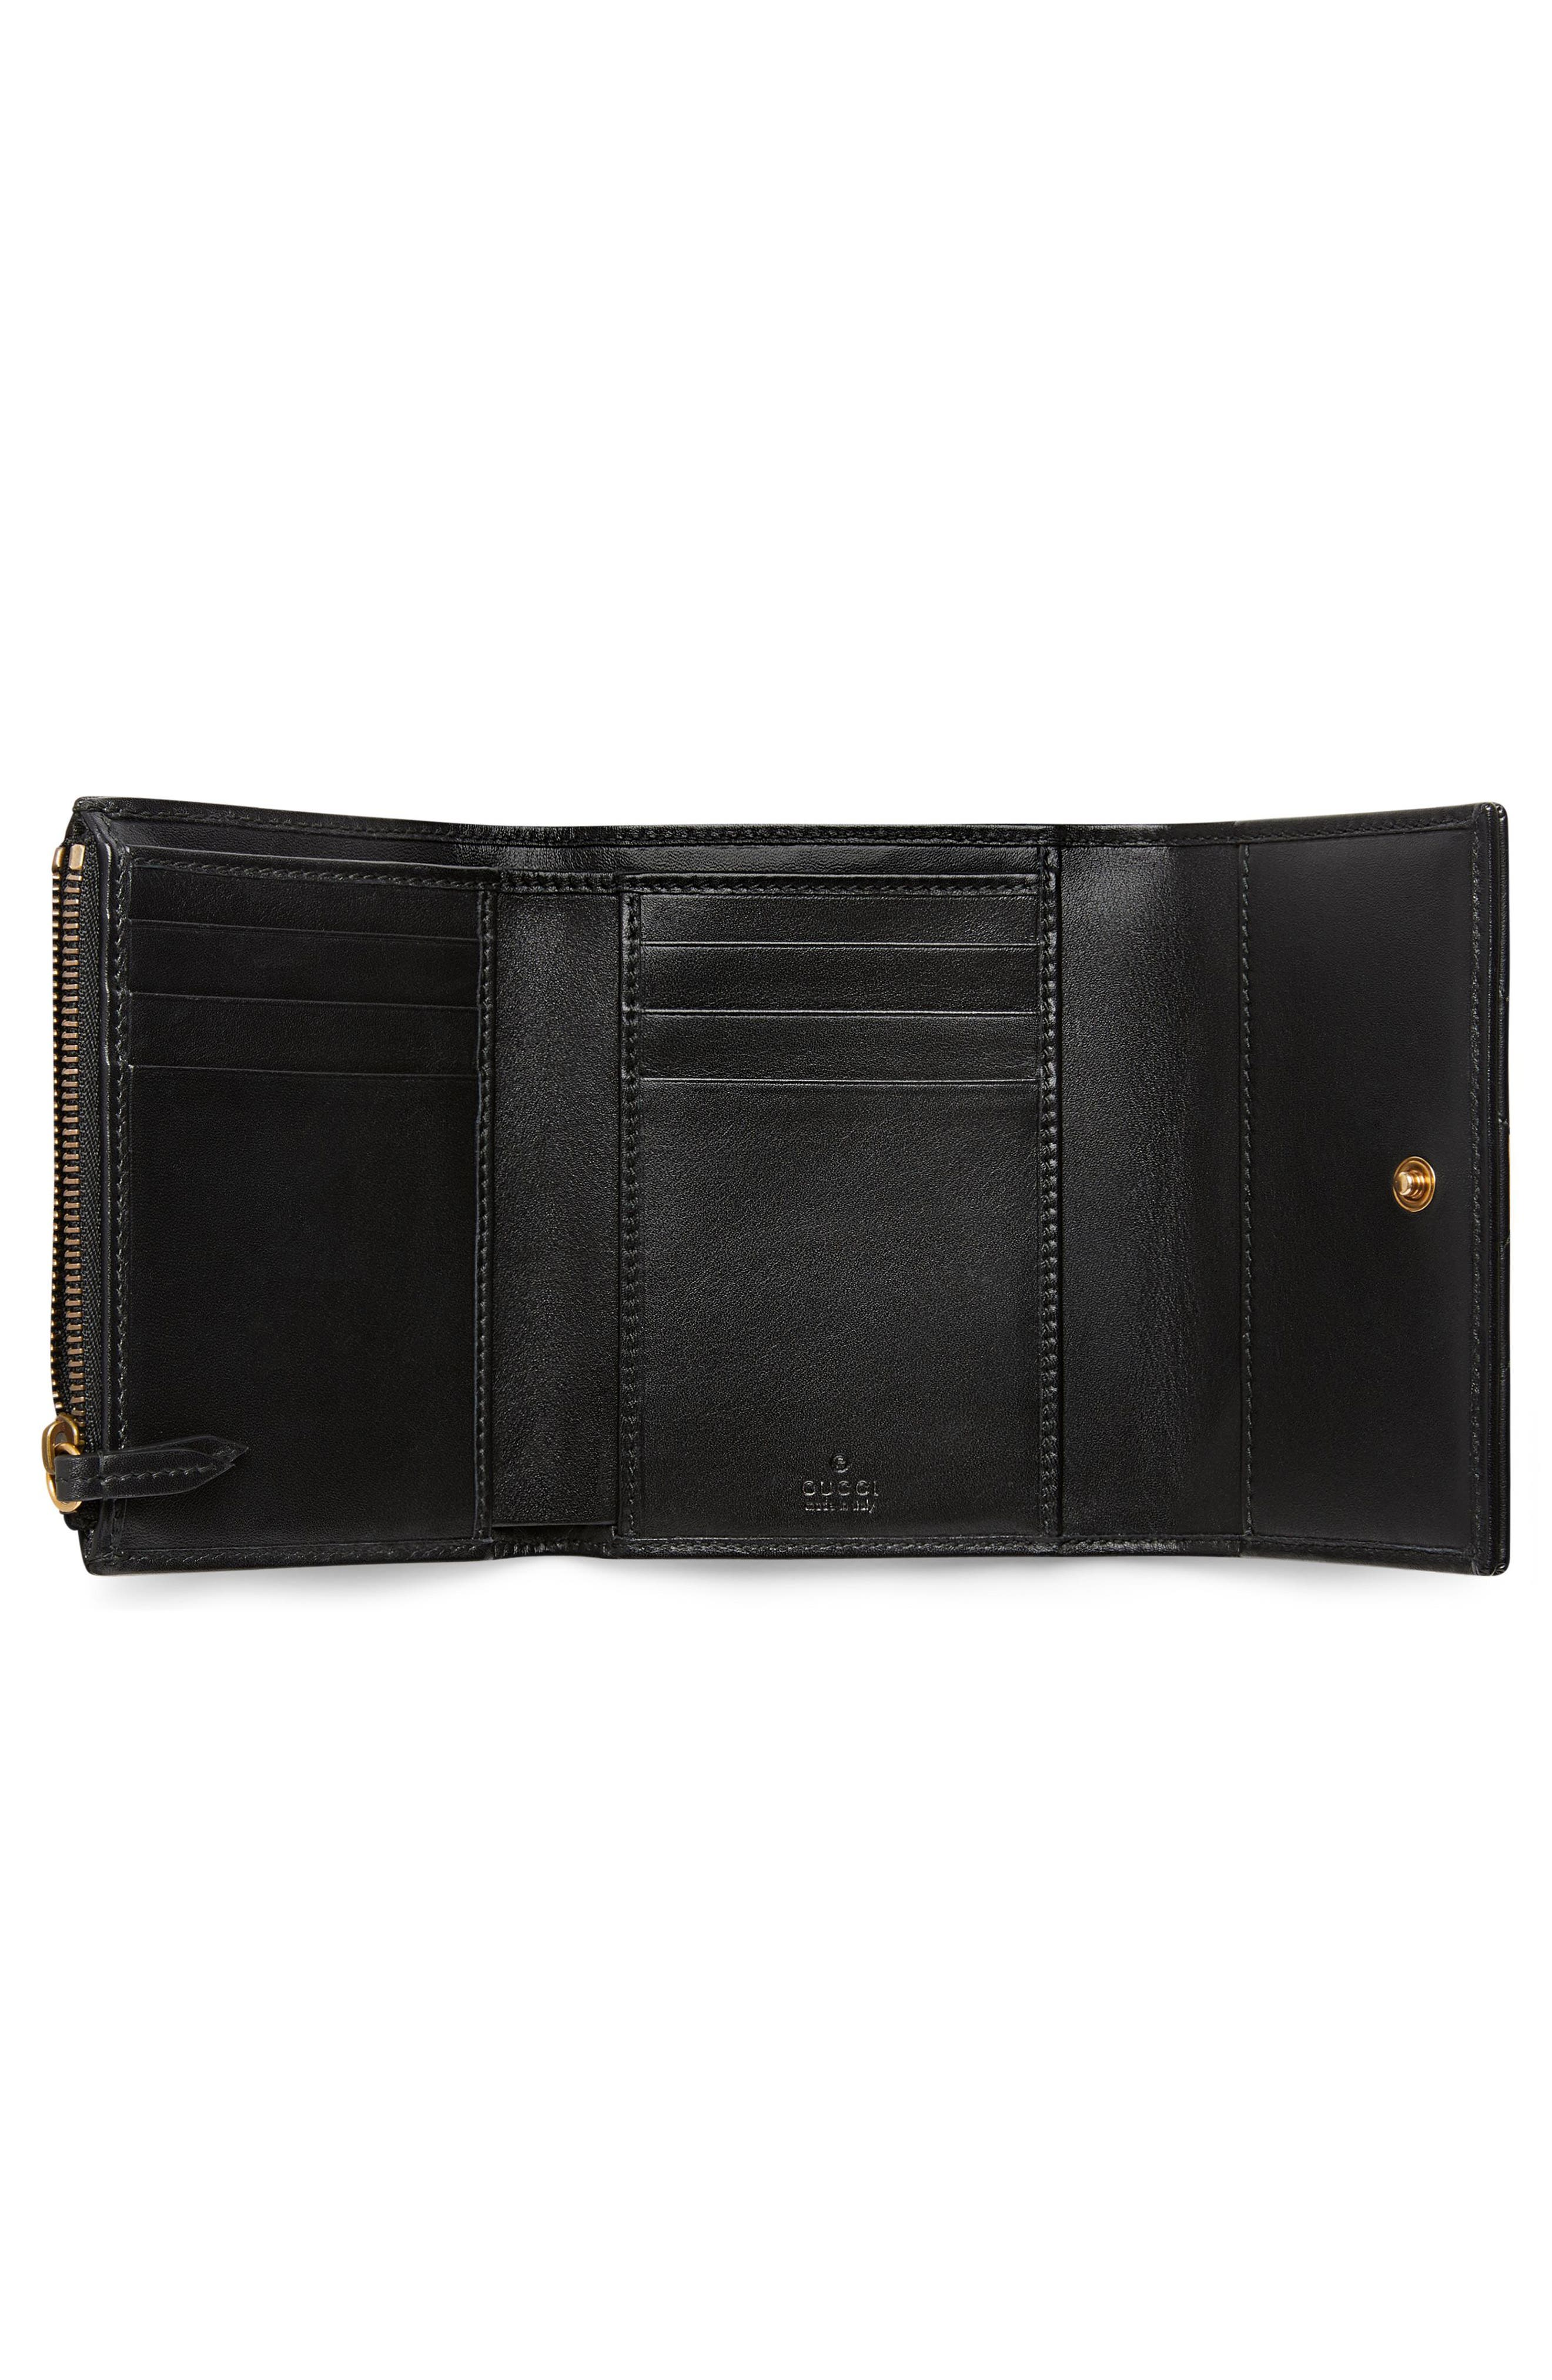 Medium Marmont 2.0 Leather Bifold Wallet,                             Alternate thumbnail 2, color,                             NERO